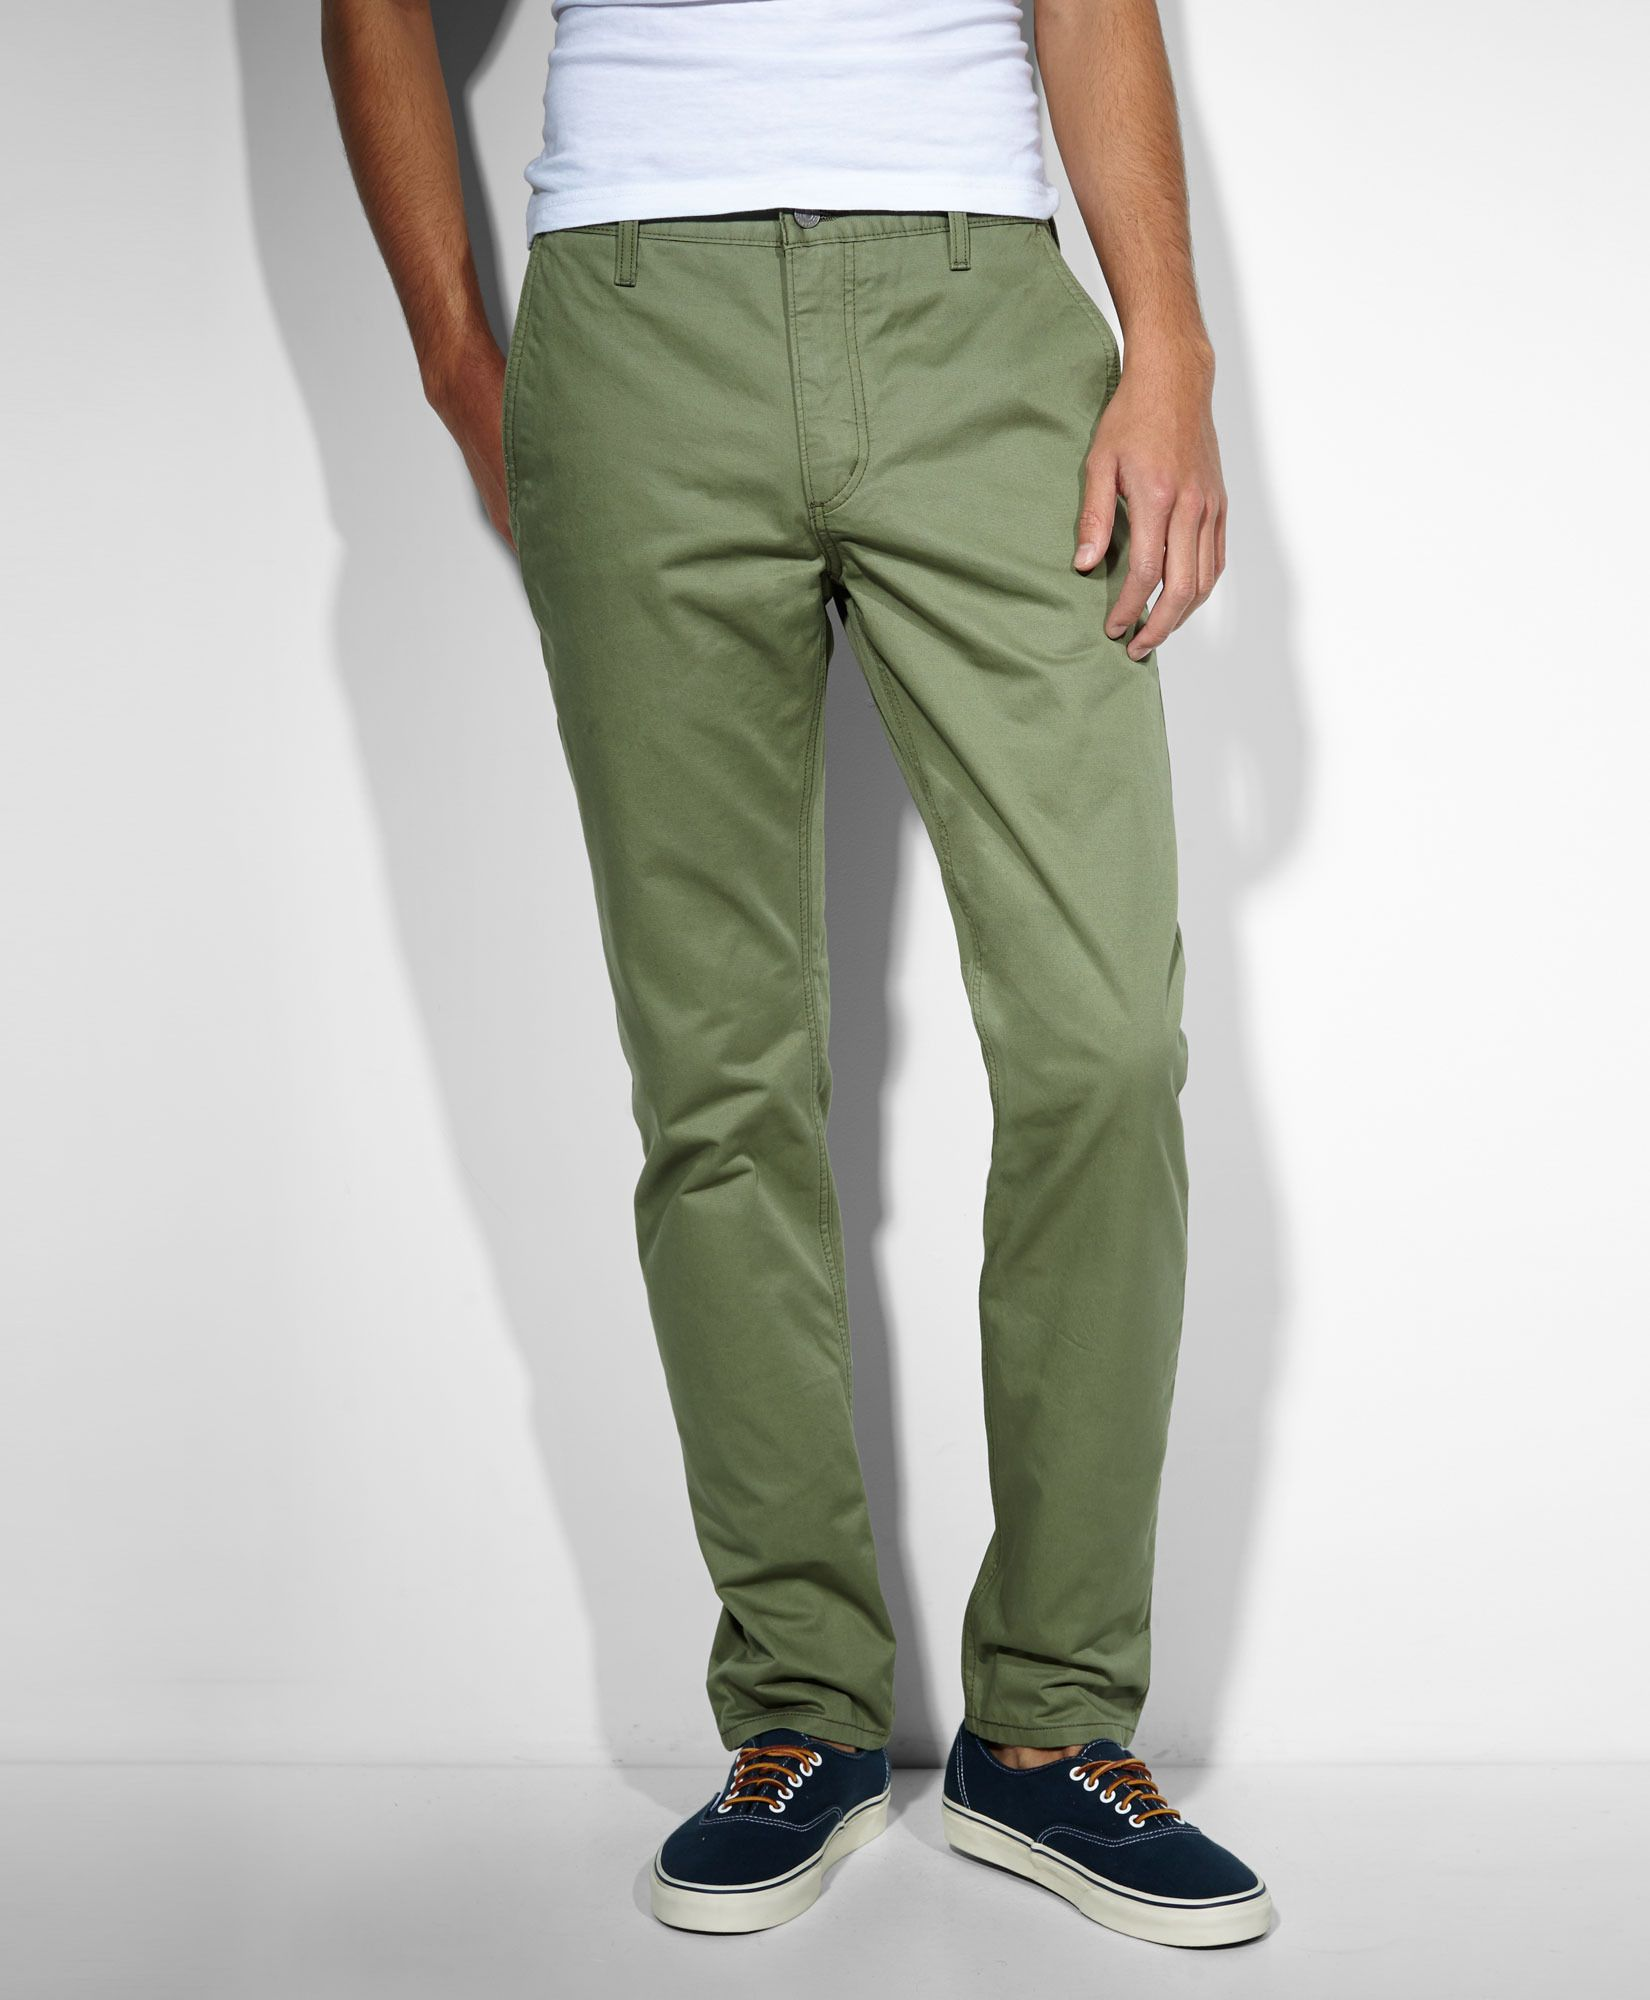 a496b66a9 Levi's 511™ Slim Fit Hybrid Trousers - Deep Lichen Green - Jeans ...